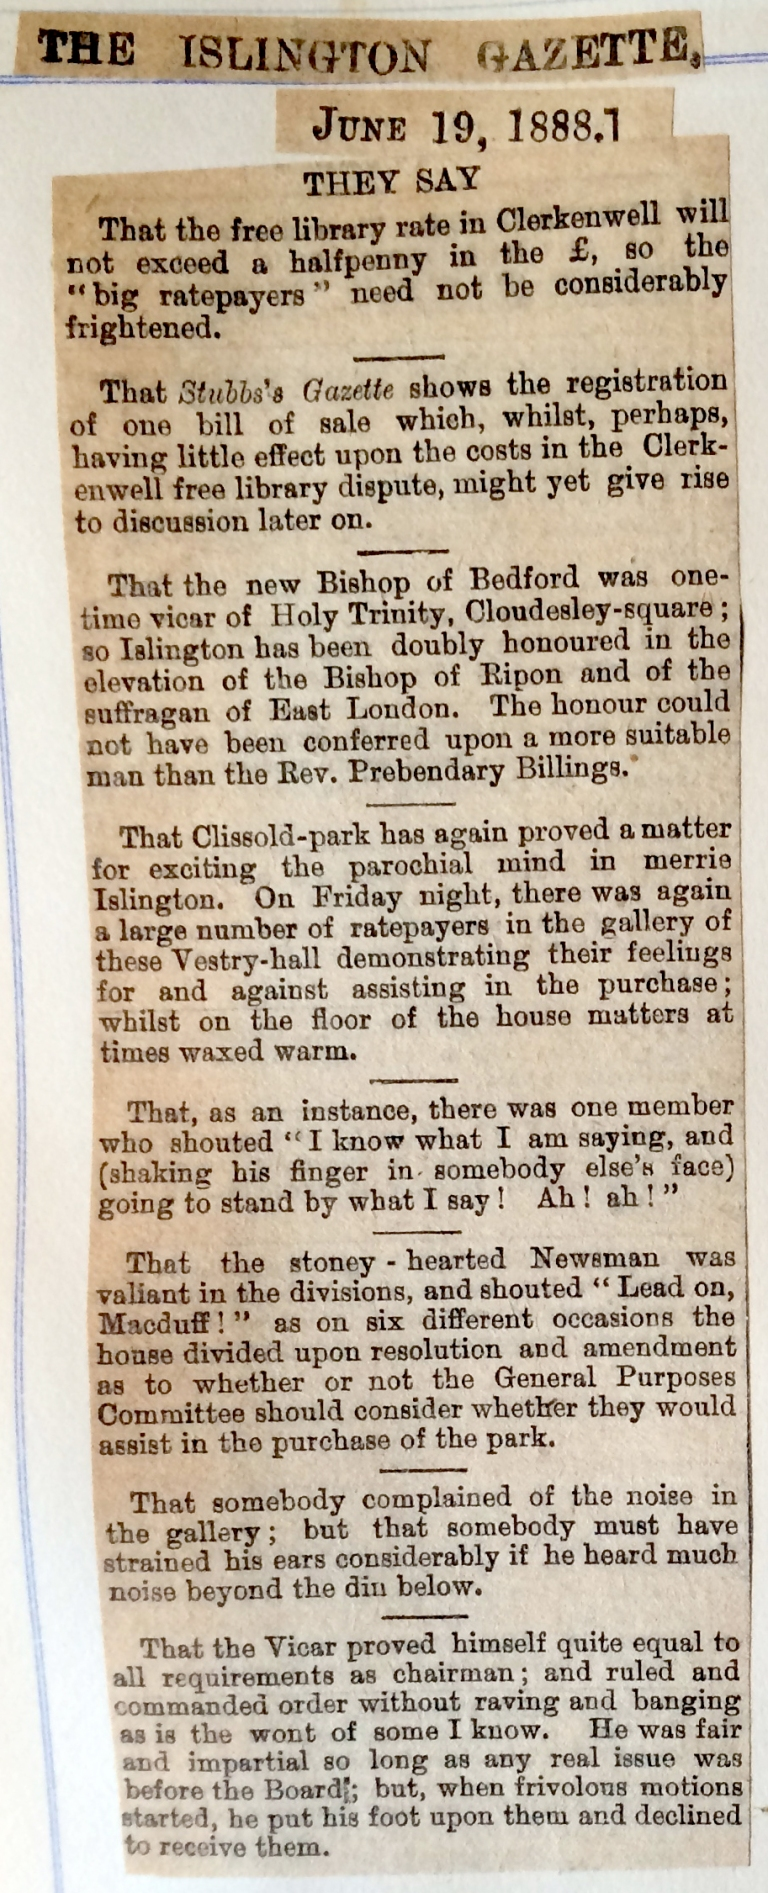 19_06_1888 NEWS CLIPPING The Islington Gazette 2.JPG